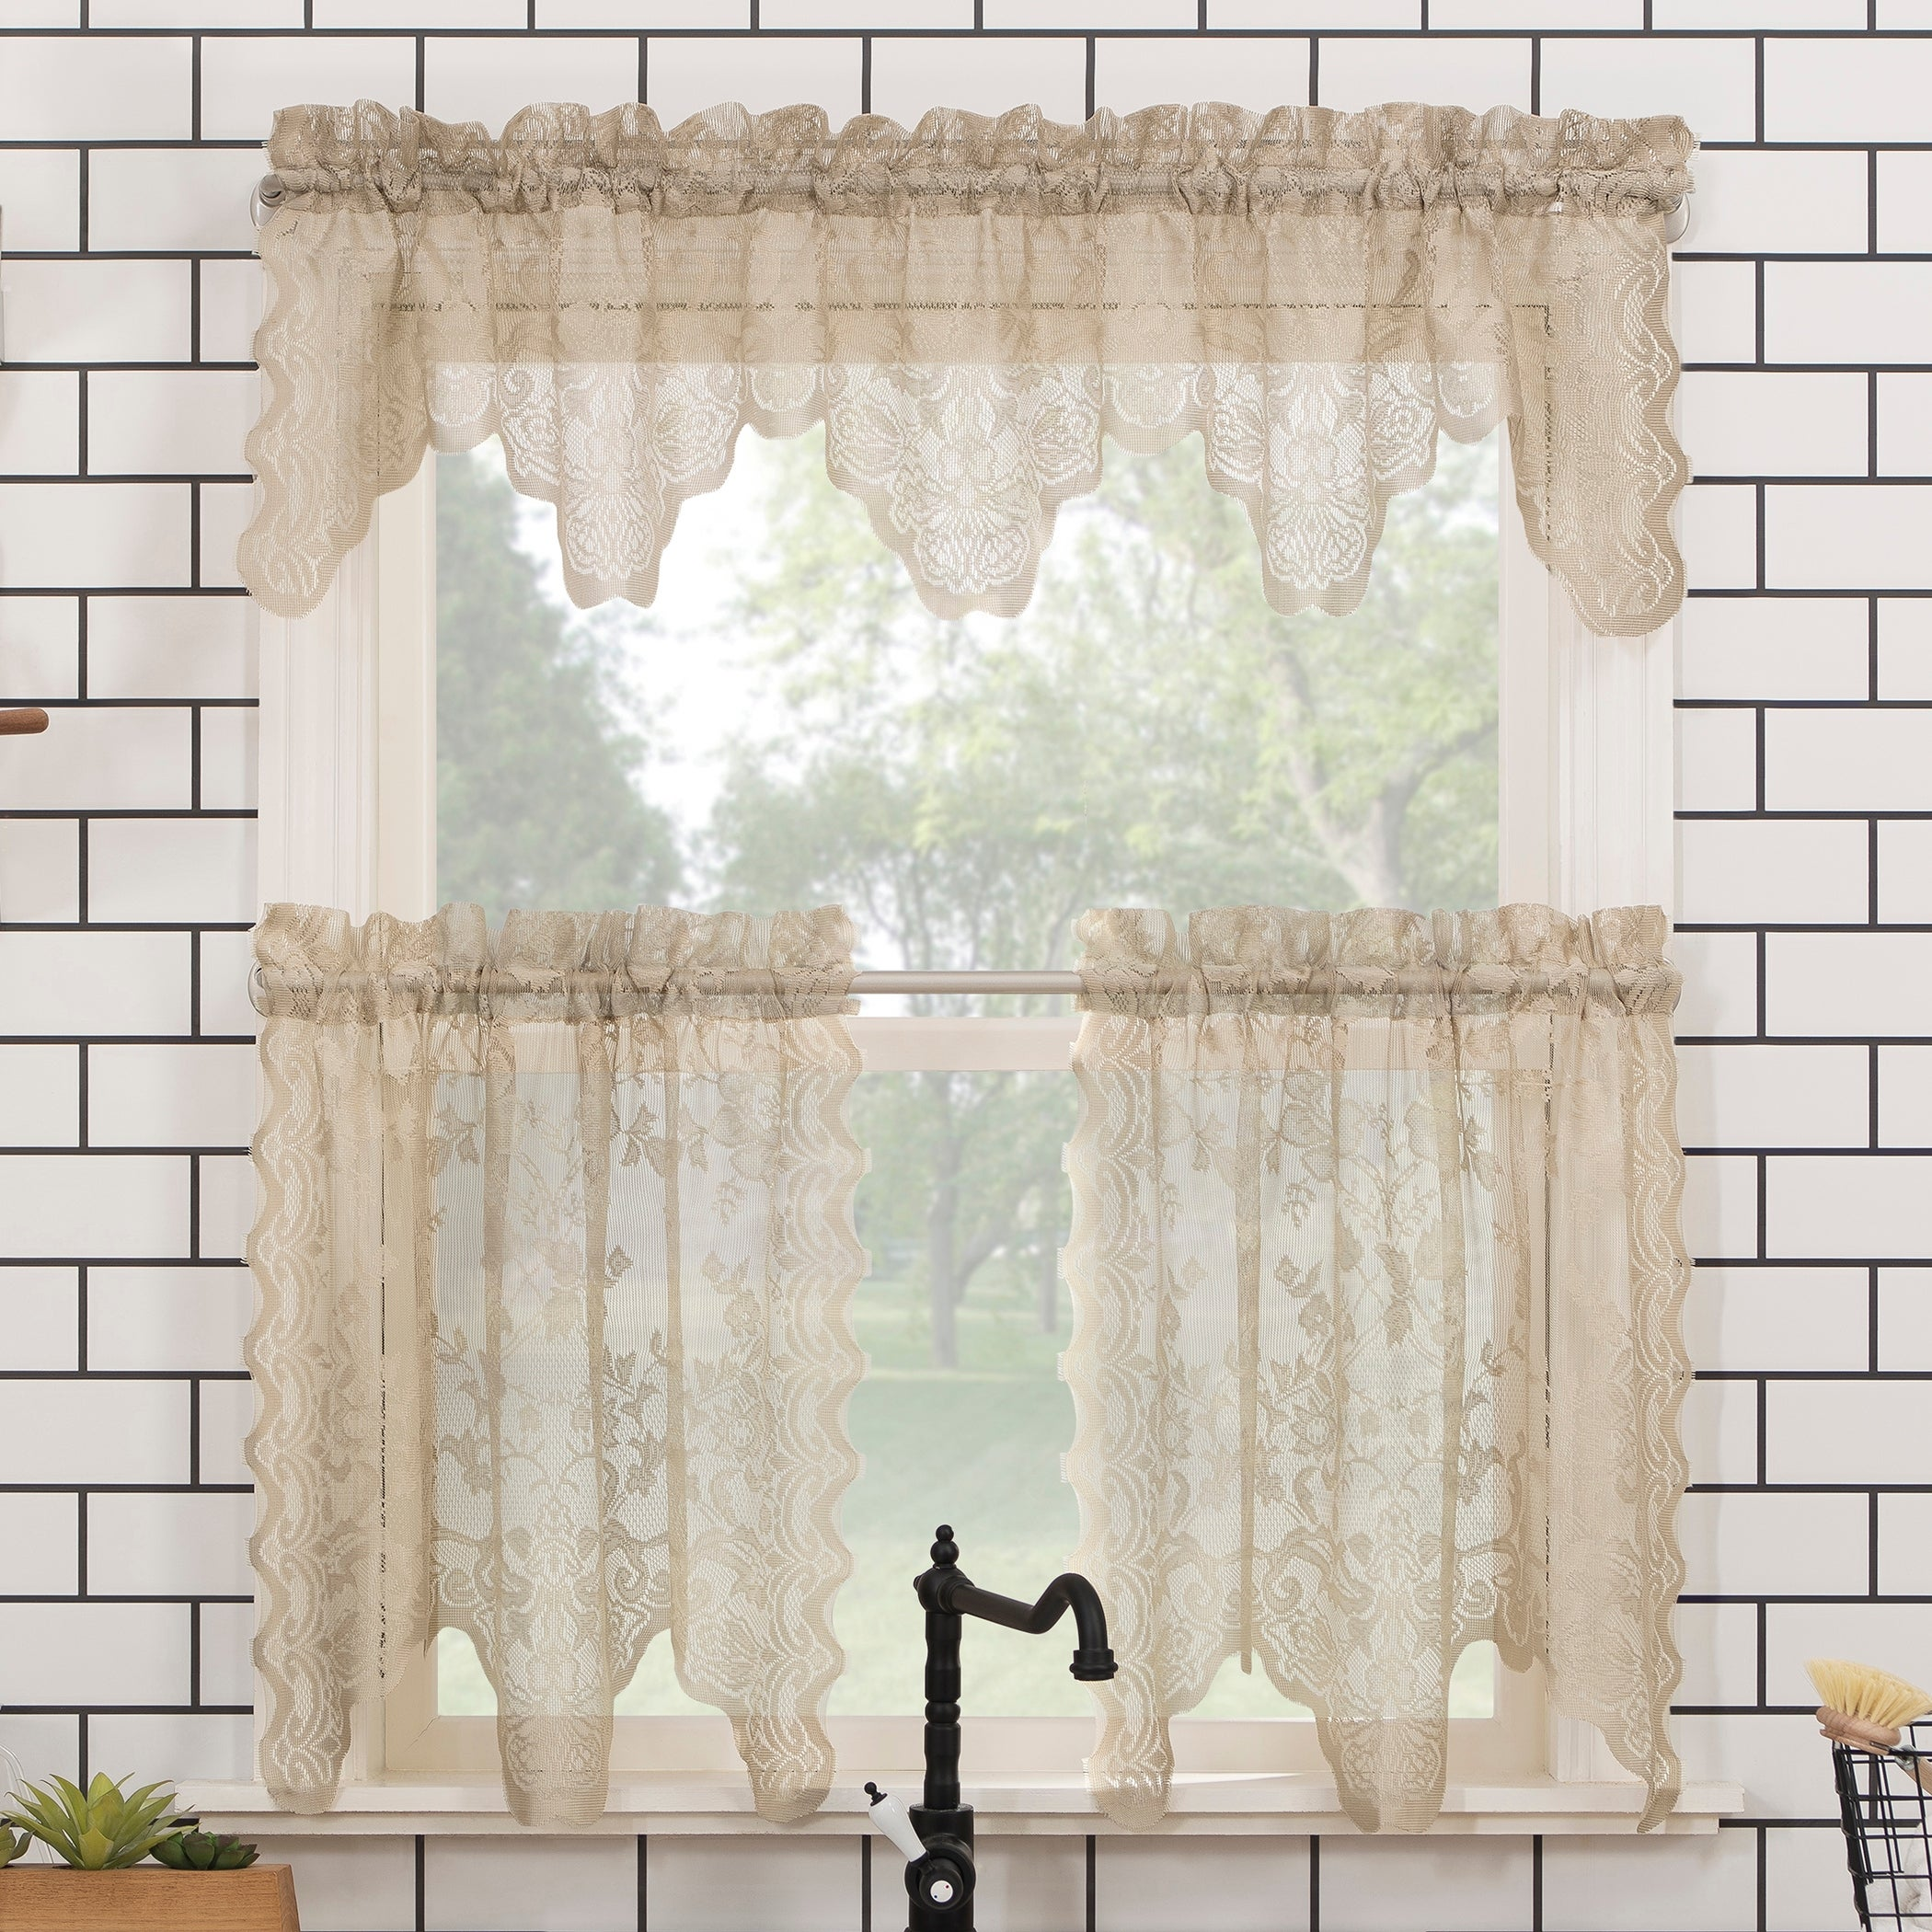 Stone 918 Alison Floral Lace Sheer Rod Pocket Kitchen Curtain Valance And Tiers Set No 58 X 24 3 Piece Home Tiers